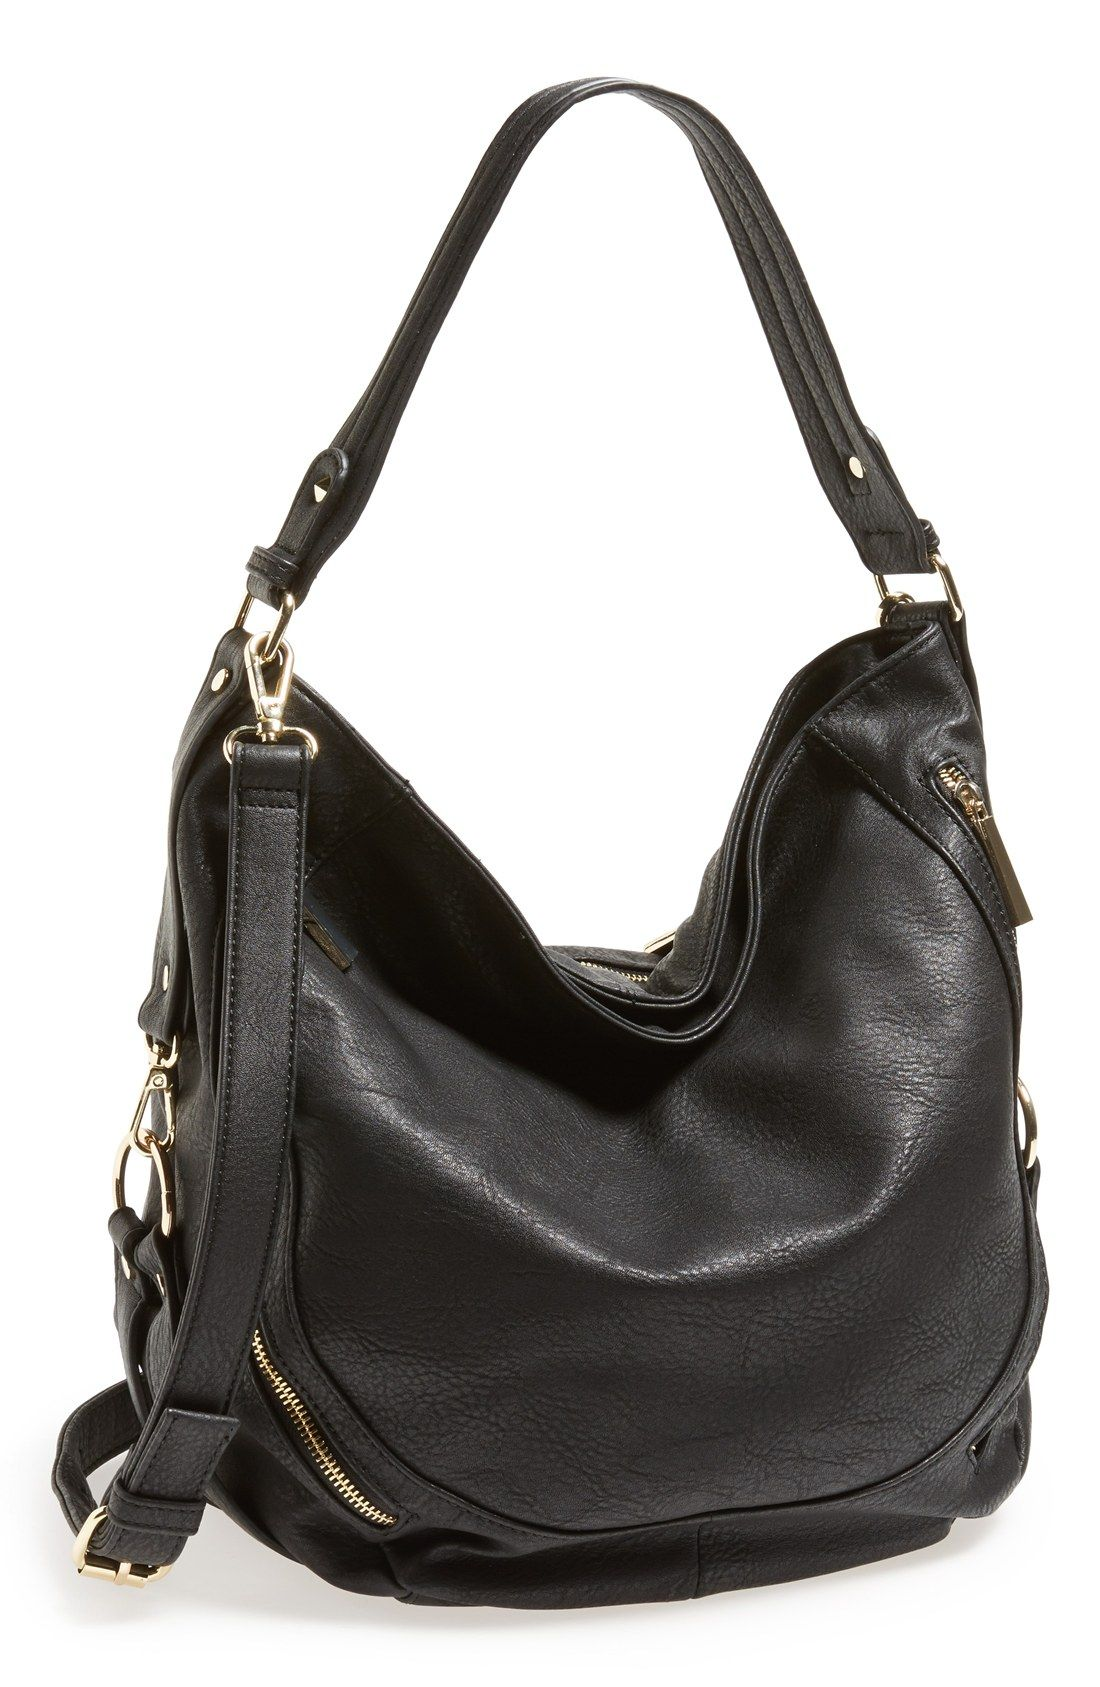 bedc226131 Love a good hobo bag with roomy pockets for all the essentials ...